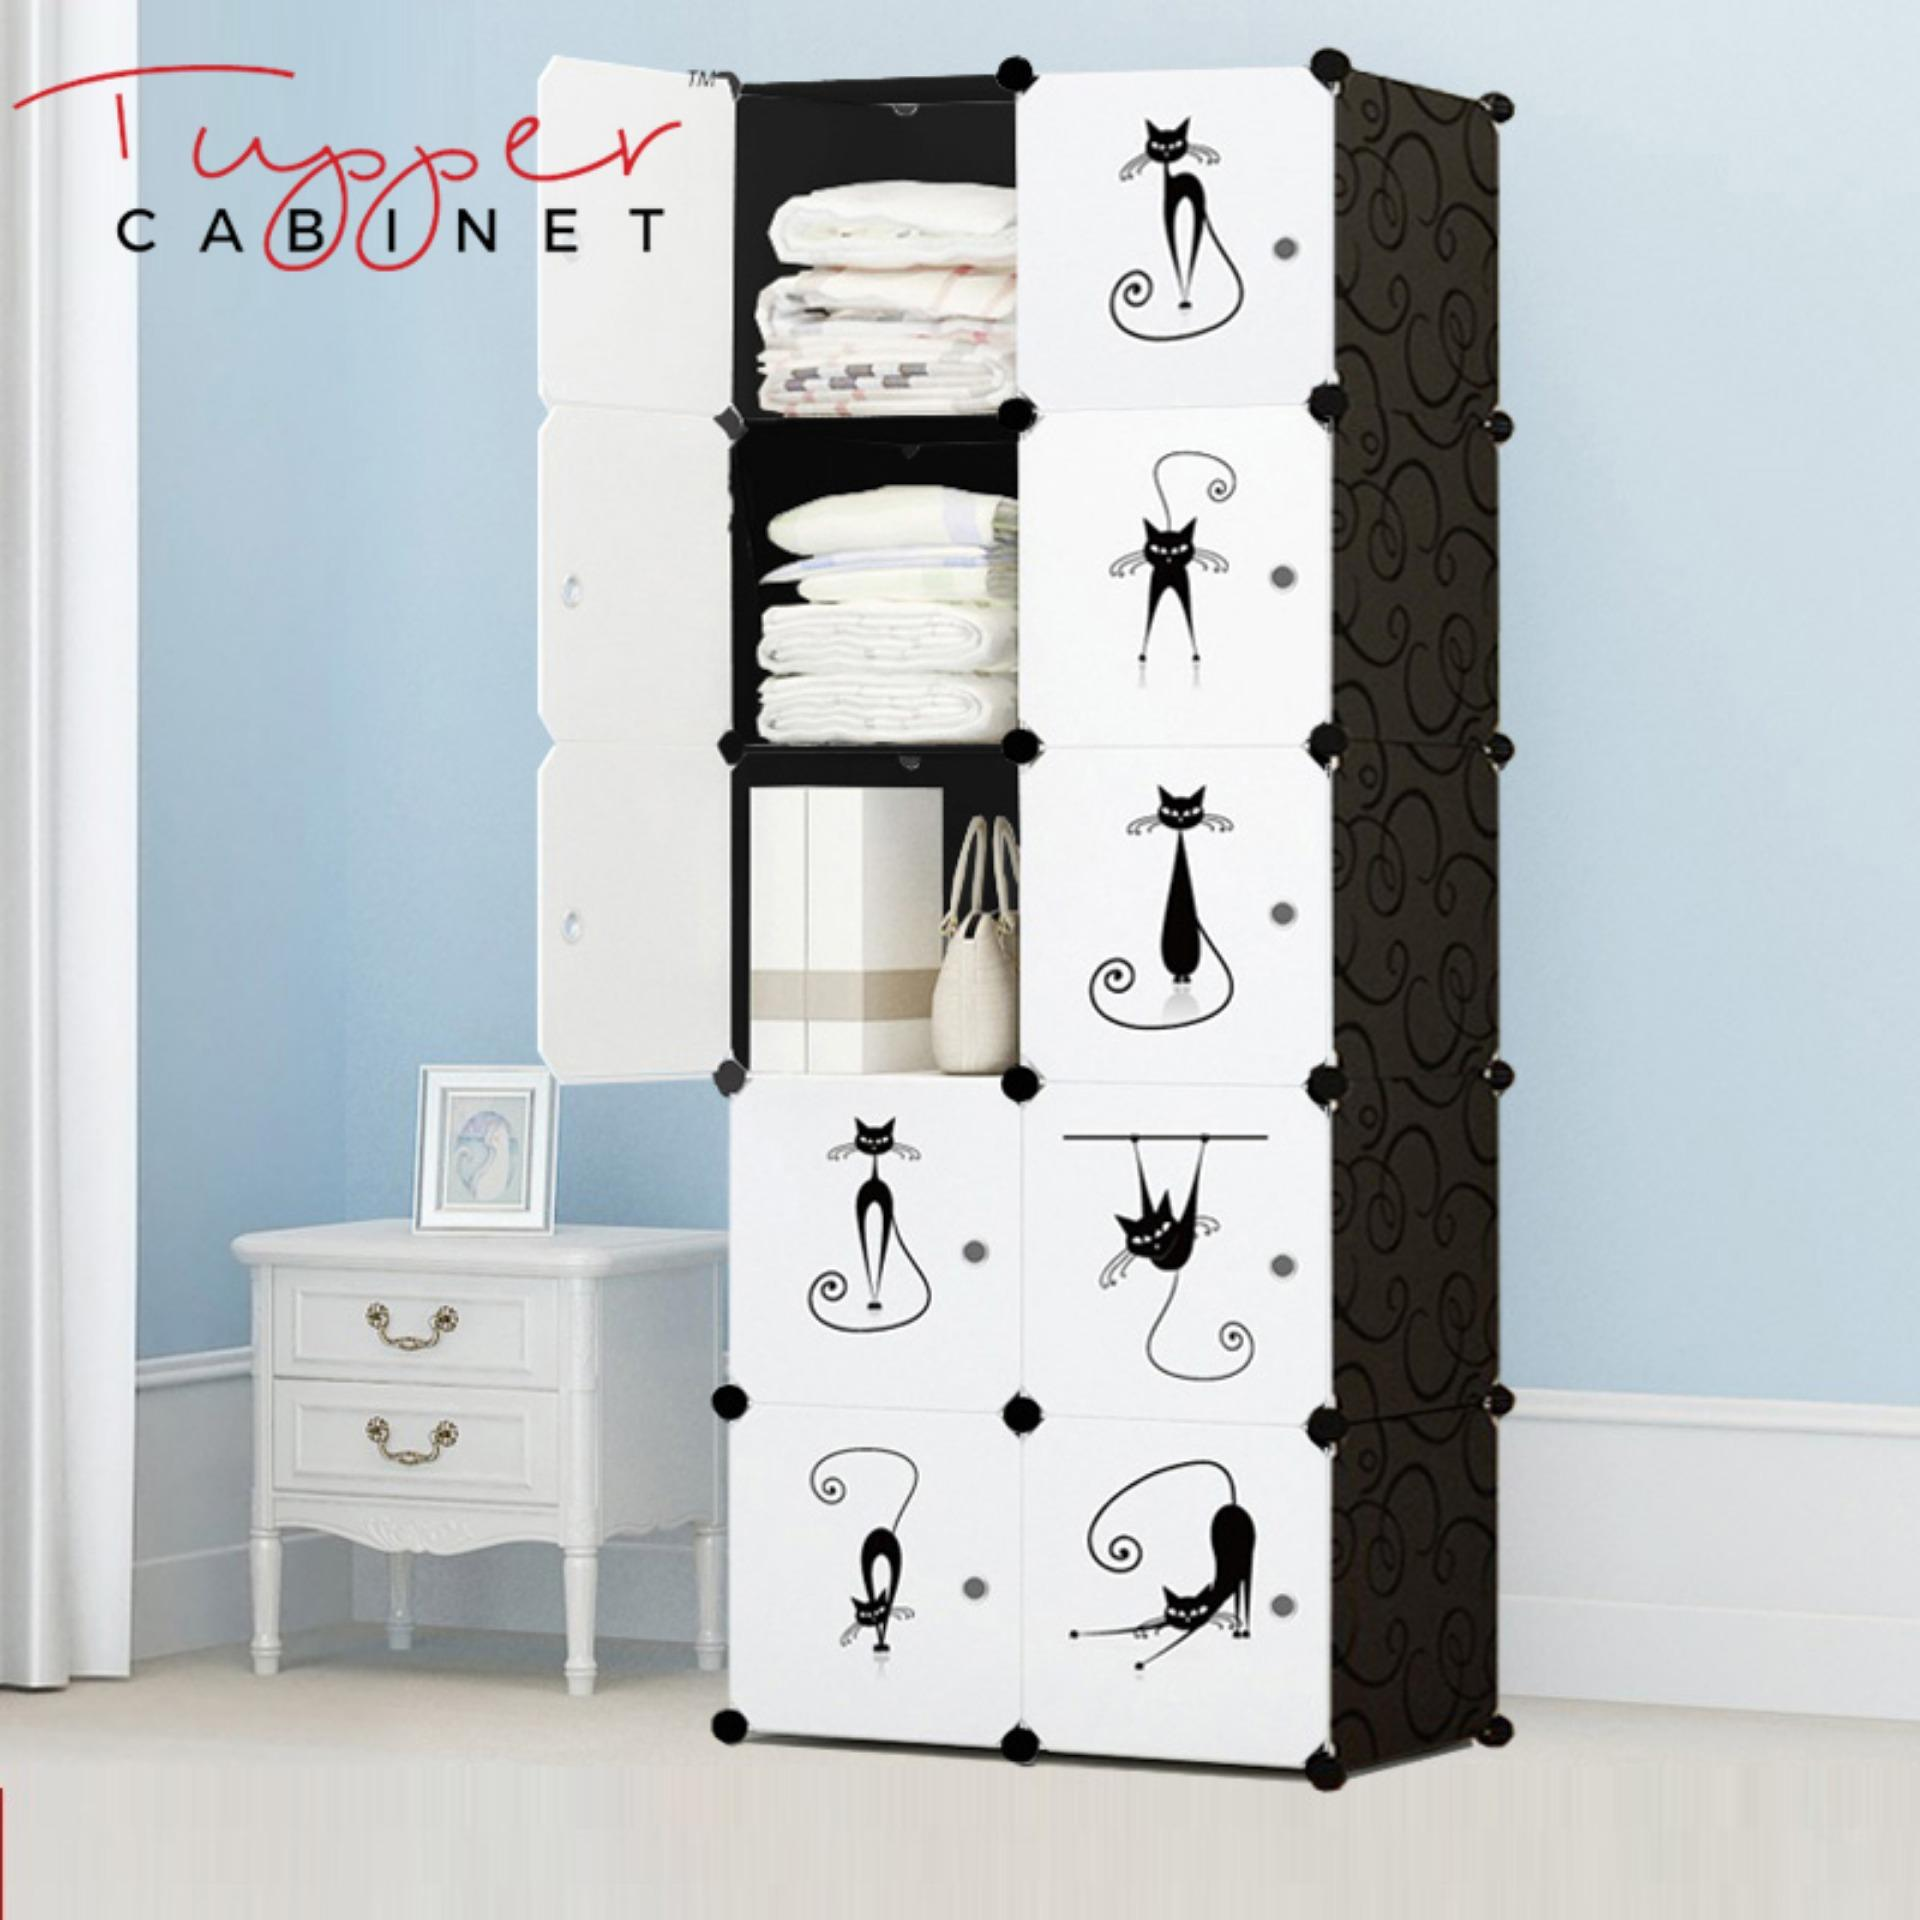 Promo Tupper Cabinet 10 Cubes Lazy Cat Diy Storage Cabinet Elegant Black